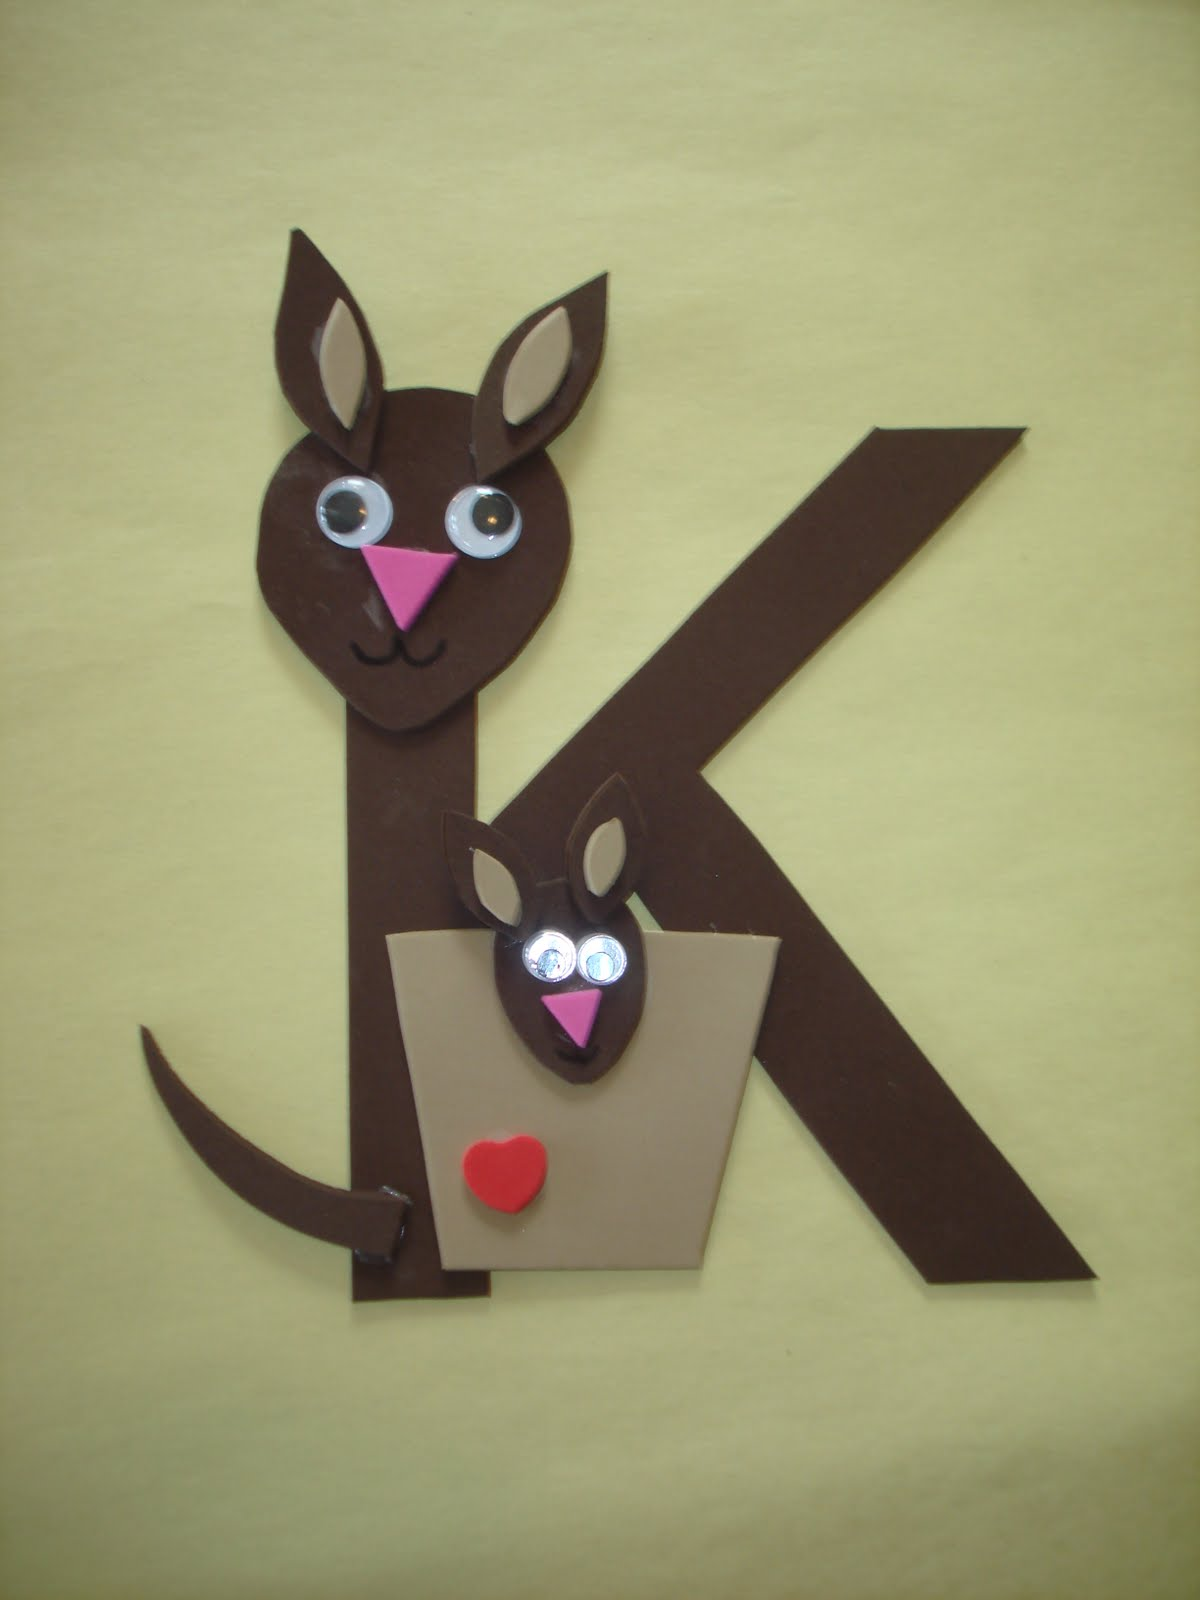 Arts And Crafts With Number And Alphabet Crafts And Arts Ideas